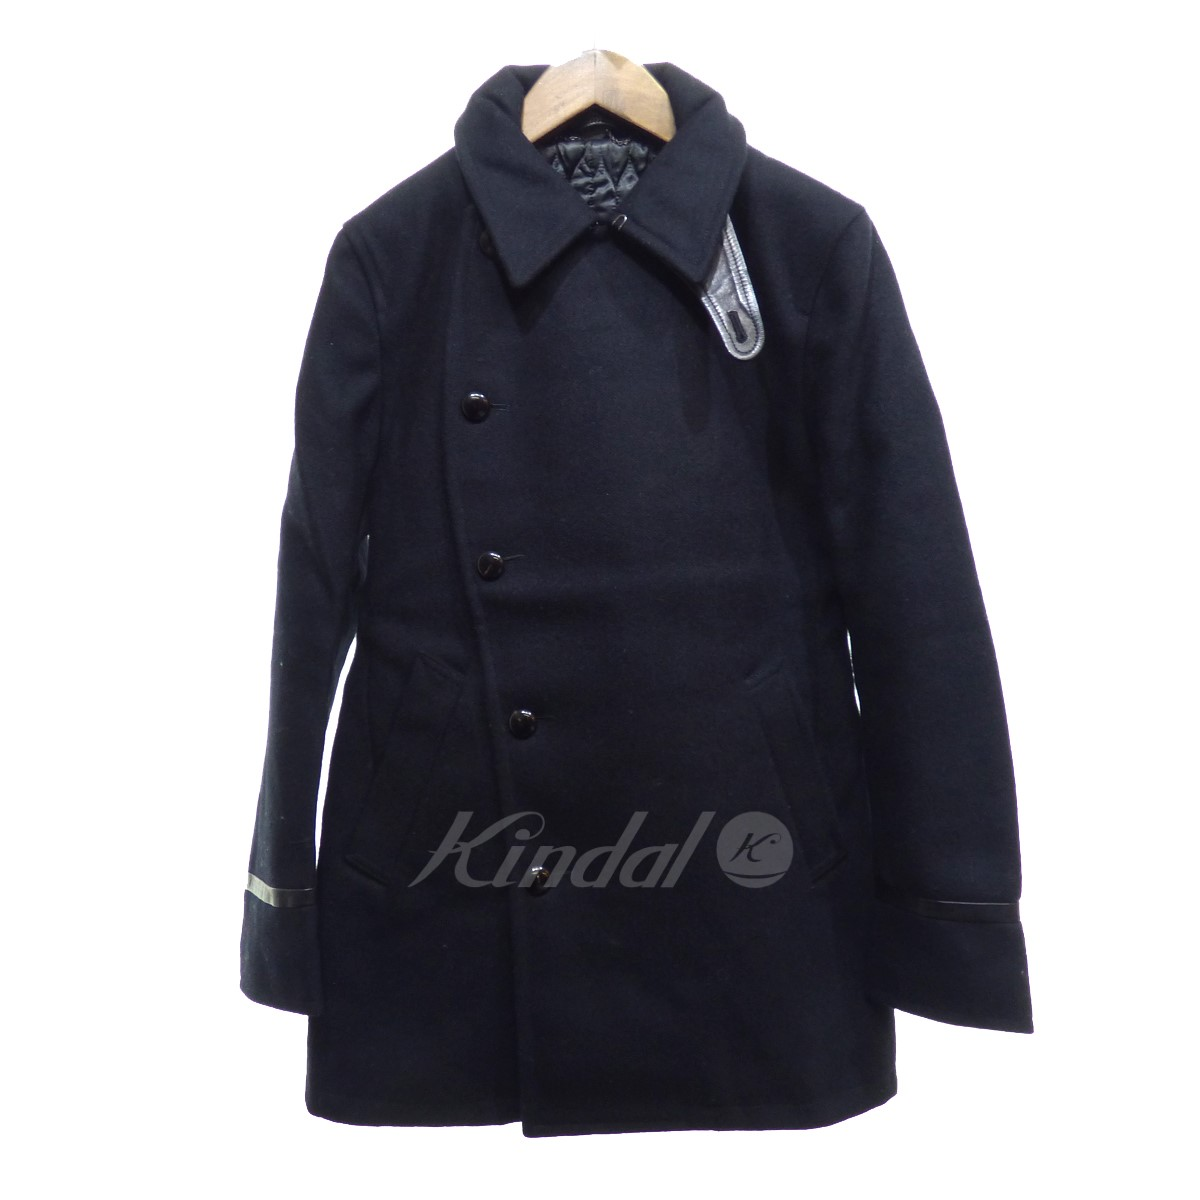 【中古】VADEL CURVE BREASTED COAT 【送料無料】 【002545】 【KIND1550】